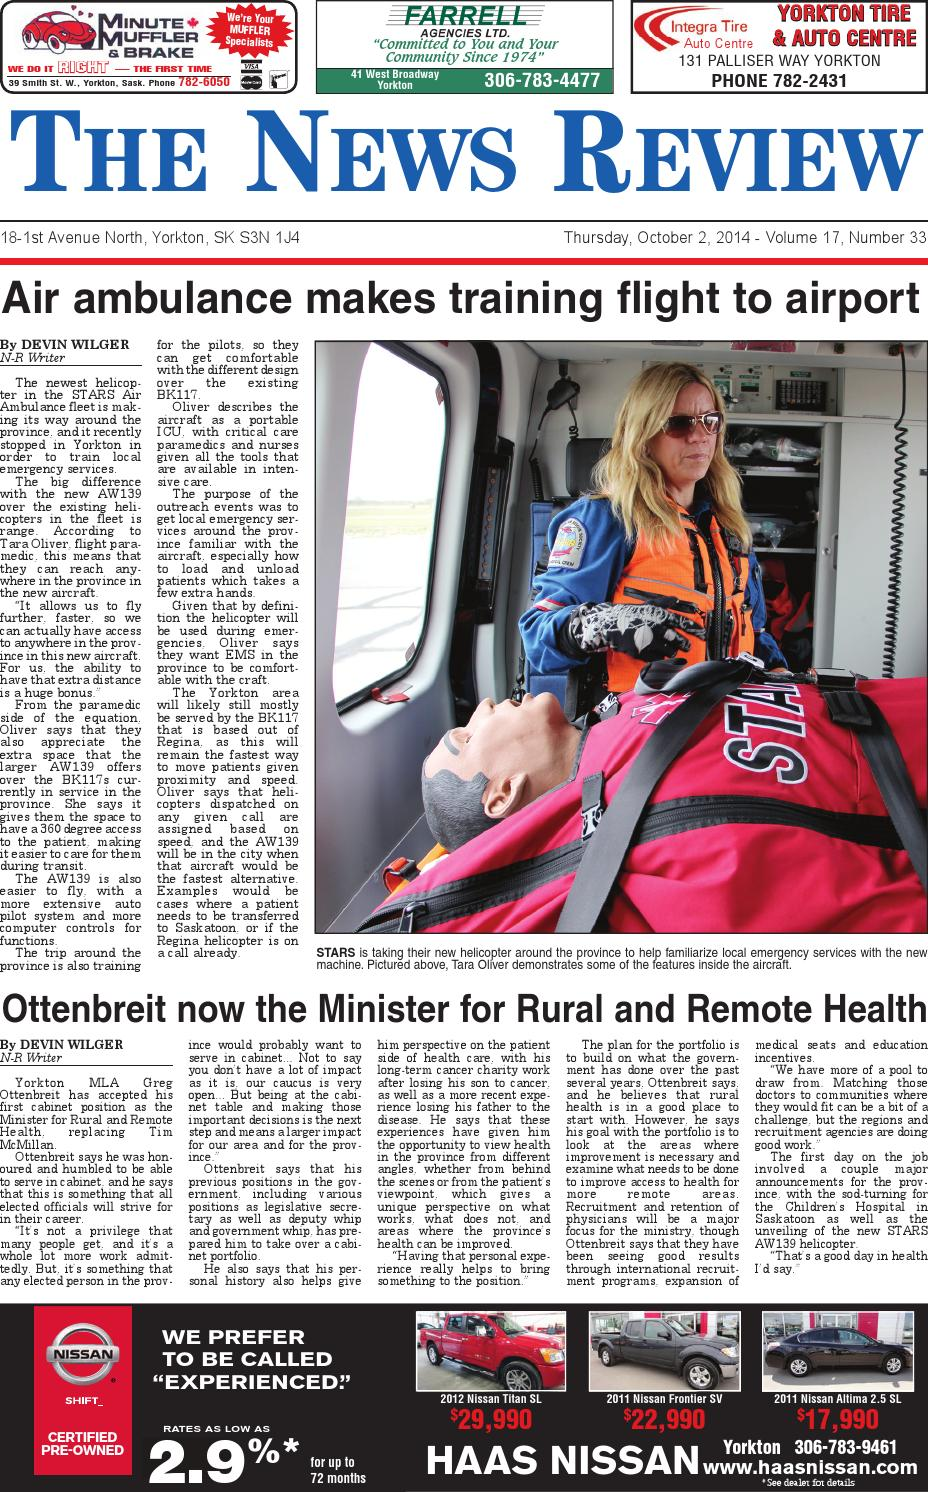 Yorkton News Review October 2, 2014 by Yorkton News Review Archive - Issuu